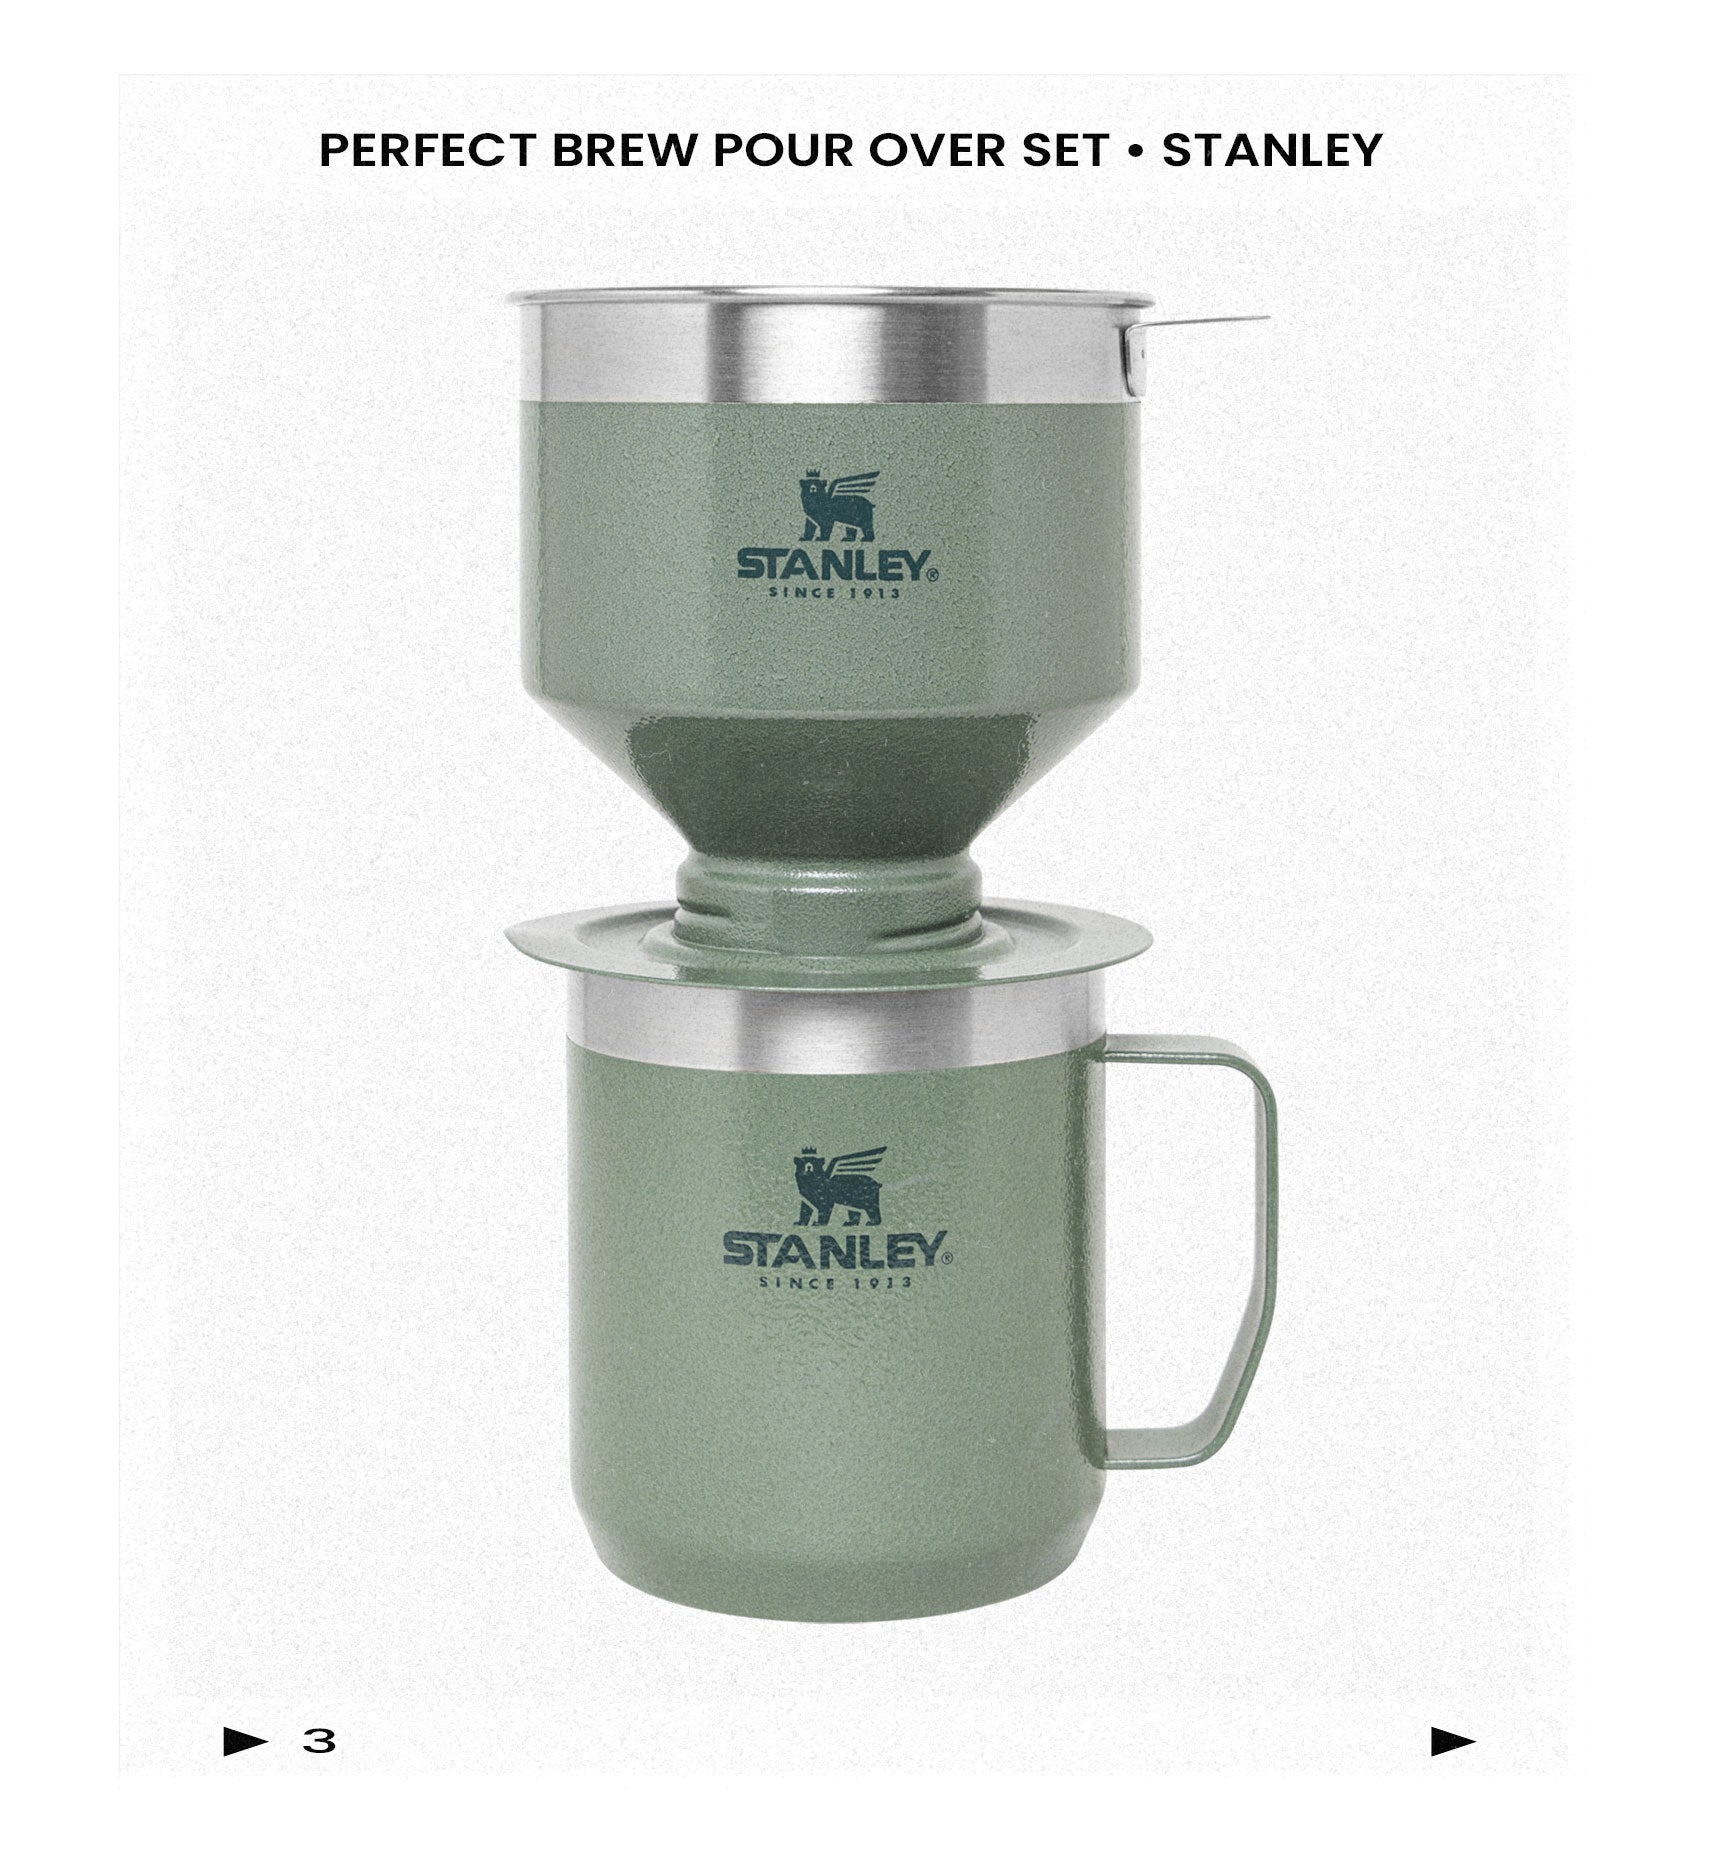 Stanley Perfect Brew Pour Over Set